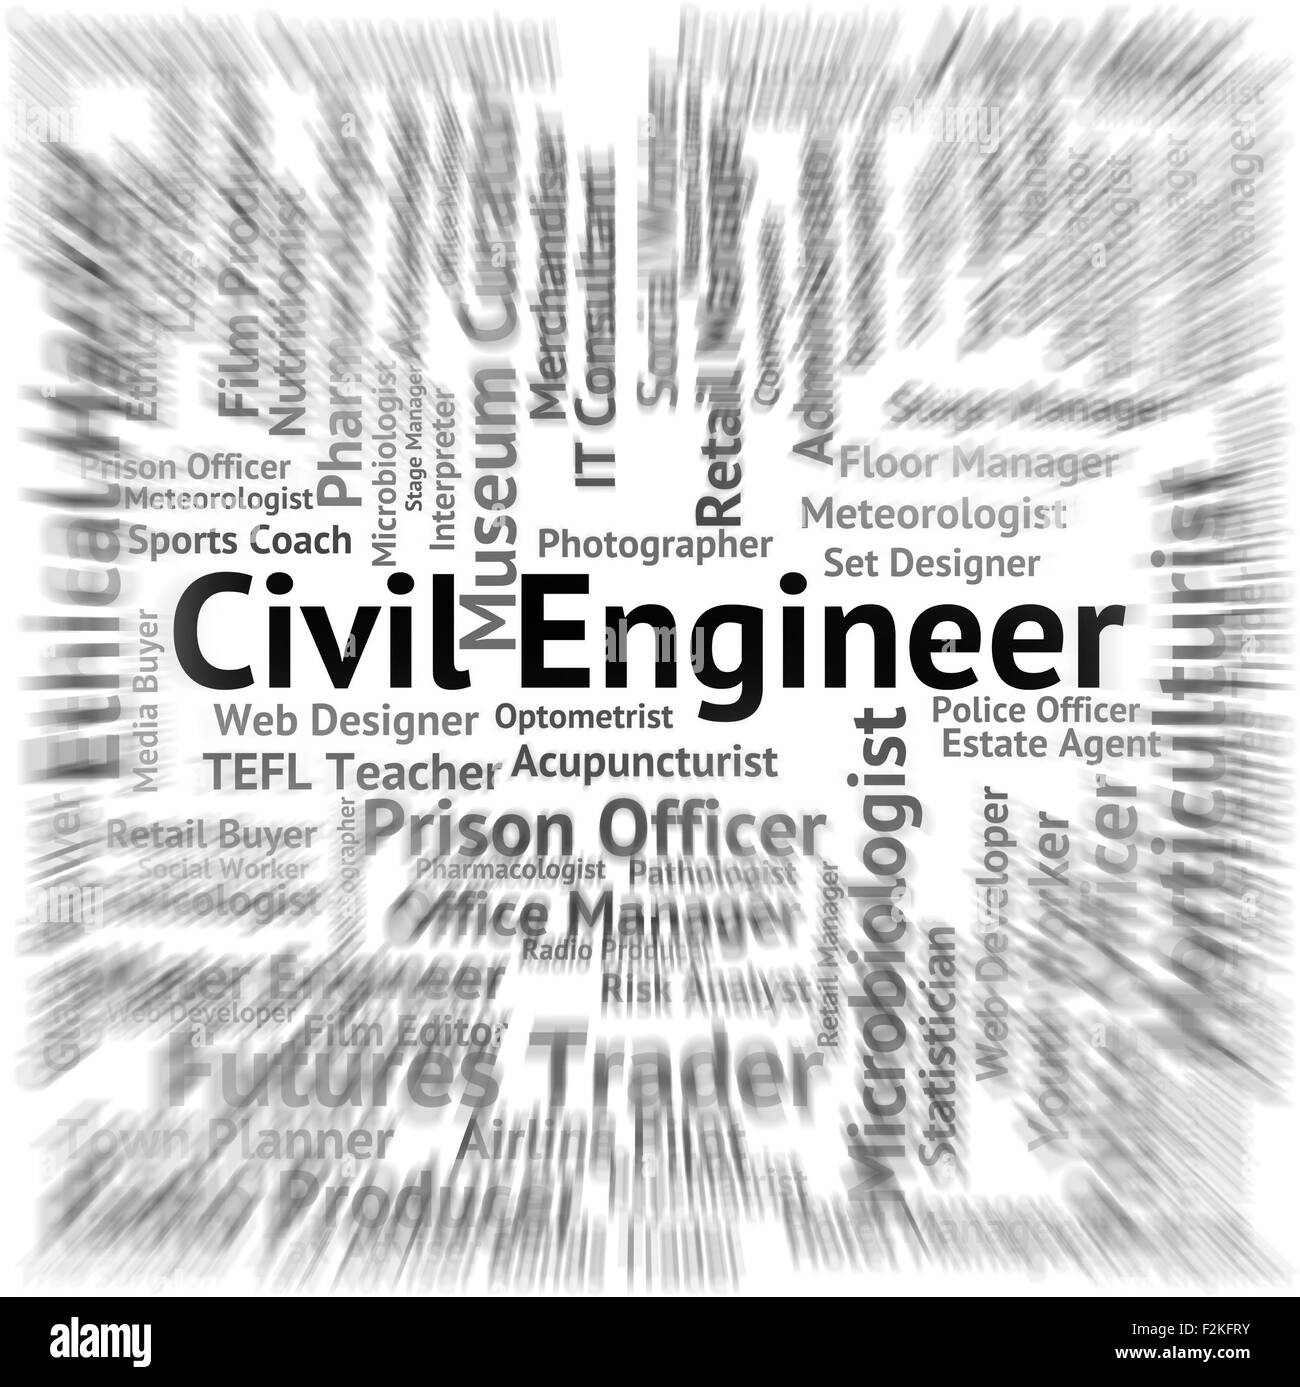 Civil Engineer Meaning Work Occupation And Text  Civil Engineer